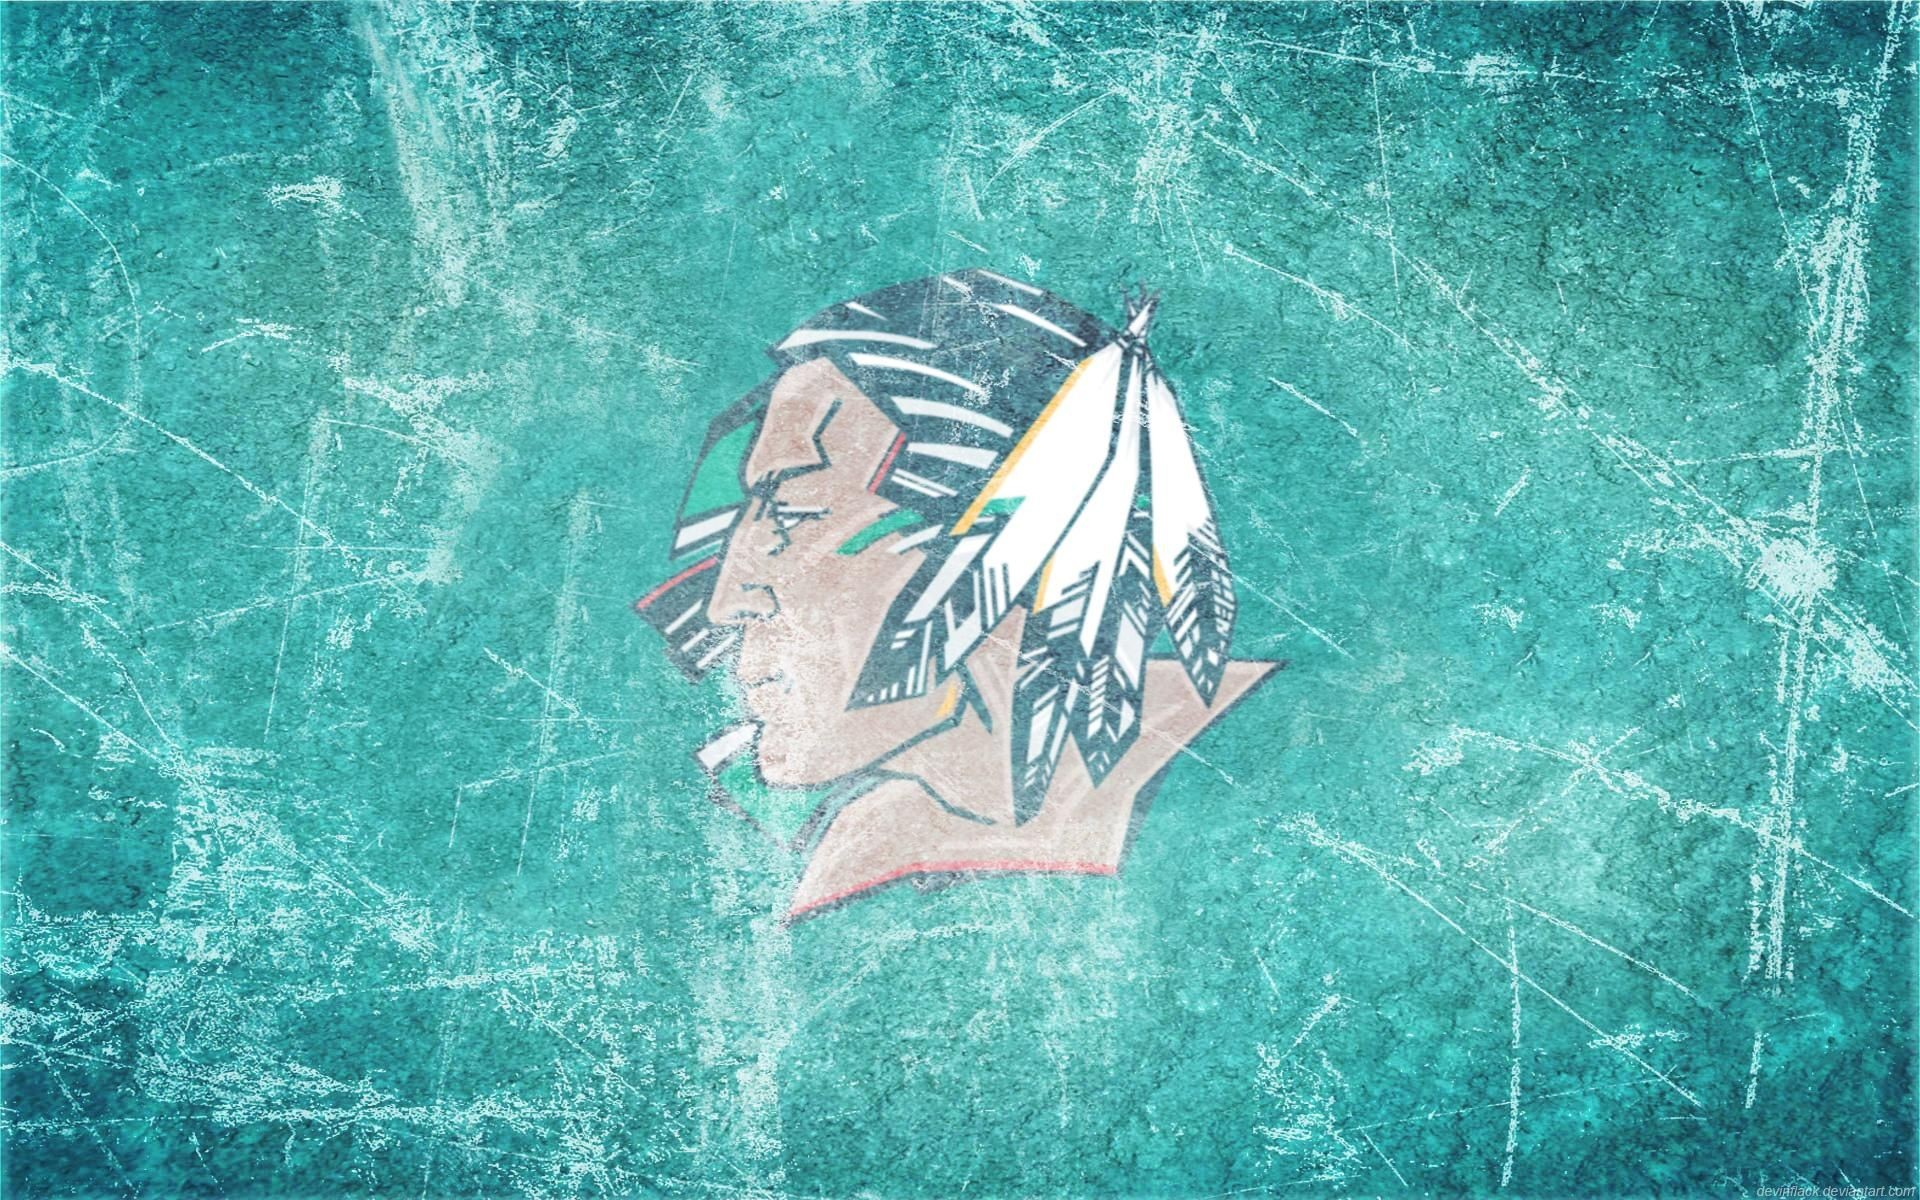 Res: 1920x1200, Fighting Sioux Wallpapers - Wallpaper Cave | All Wallpapers | Pinterest | Fighting  sioux, Sioux and Wallpaper